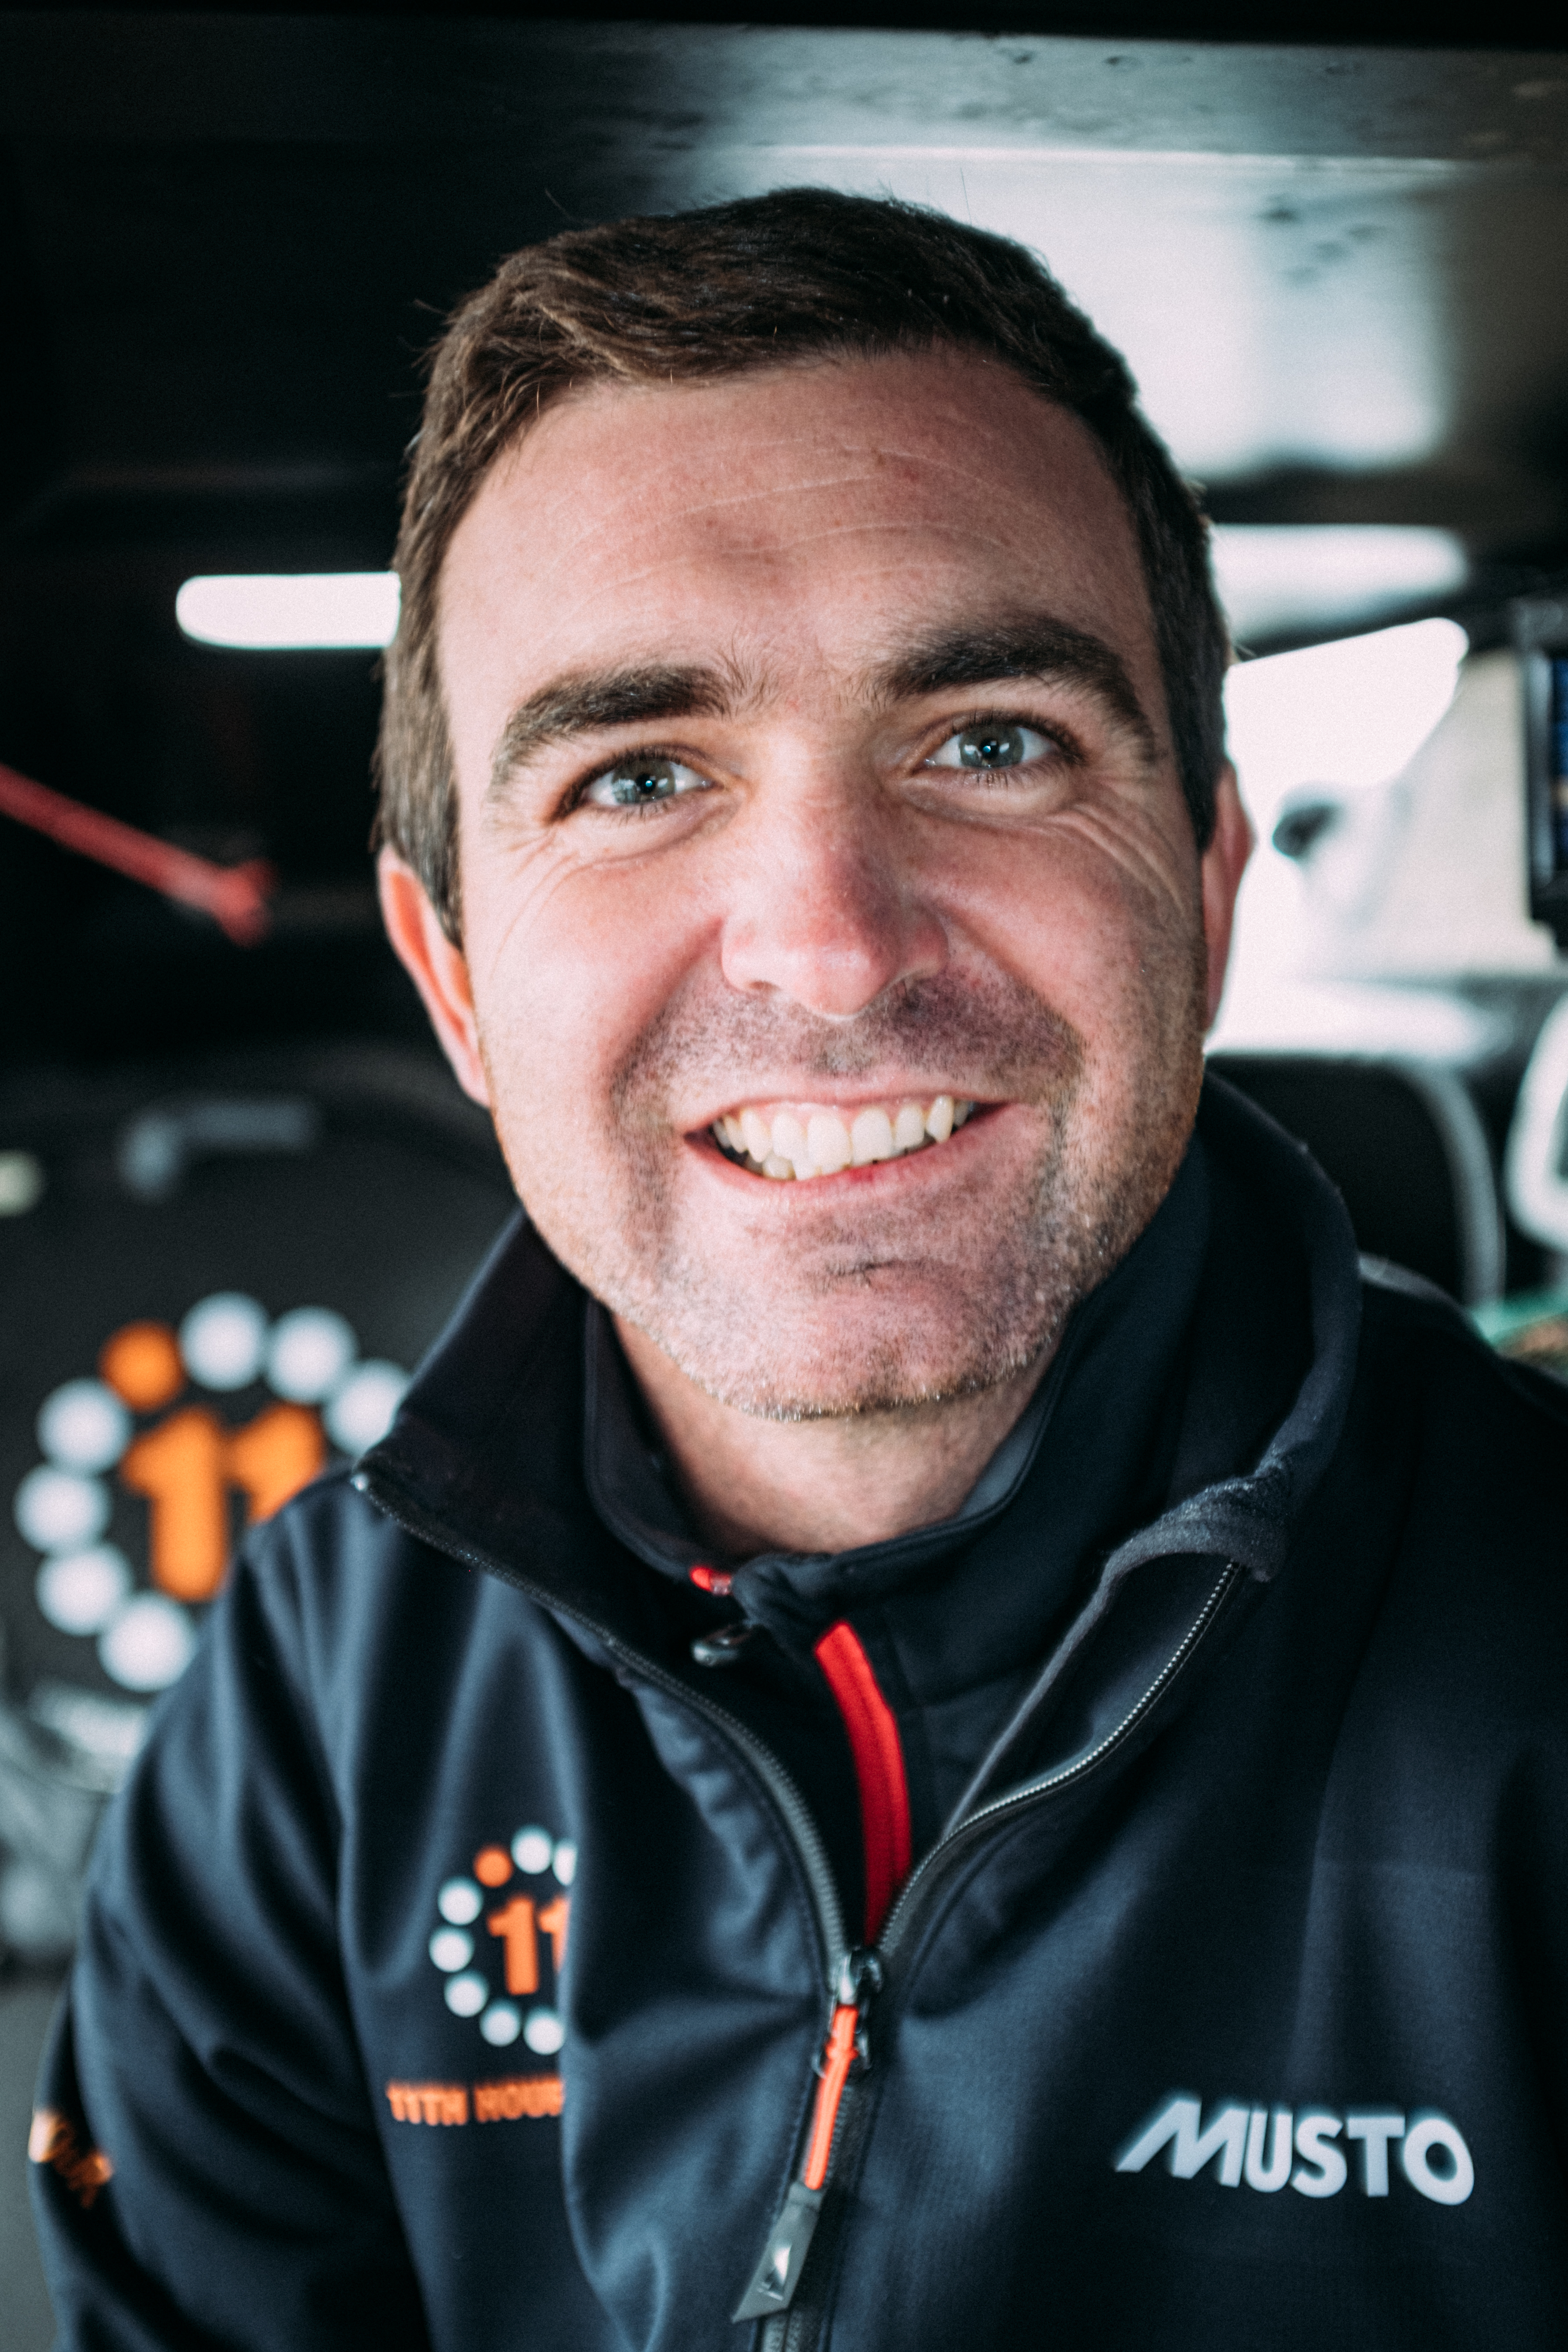 11th Hour Racing Team Member, Skipper and team Co-founder Charlie Enright